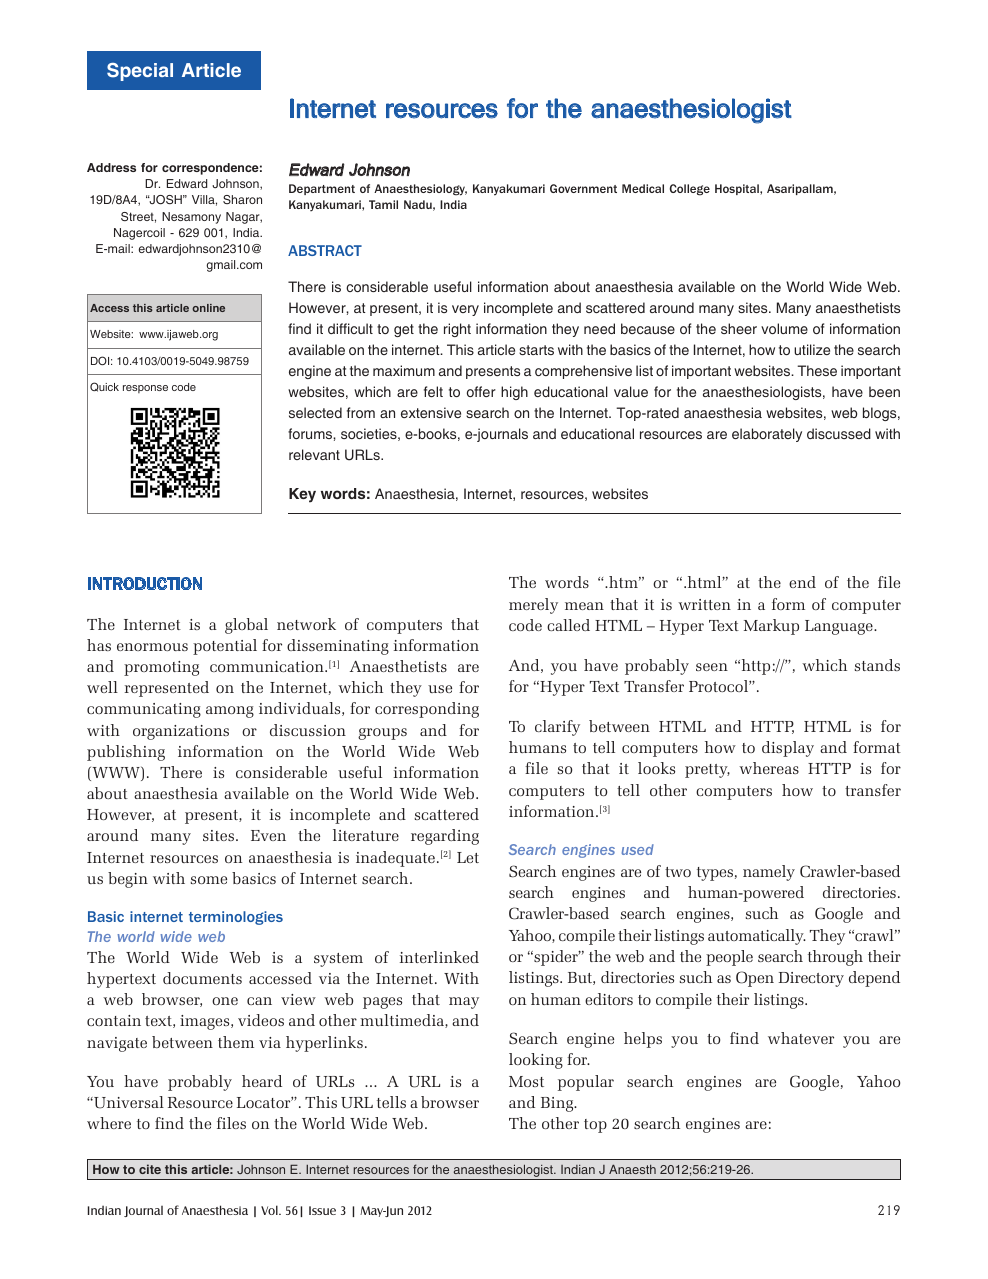 Internet resources for the anaesthesiologist – topic of